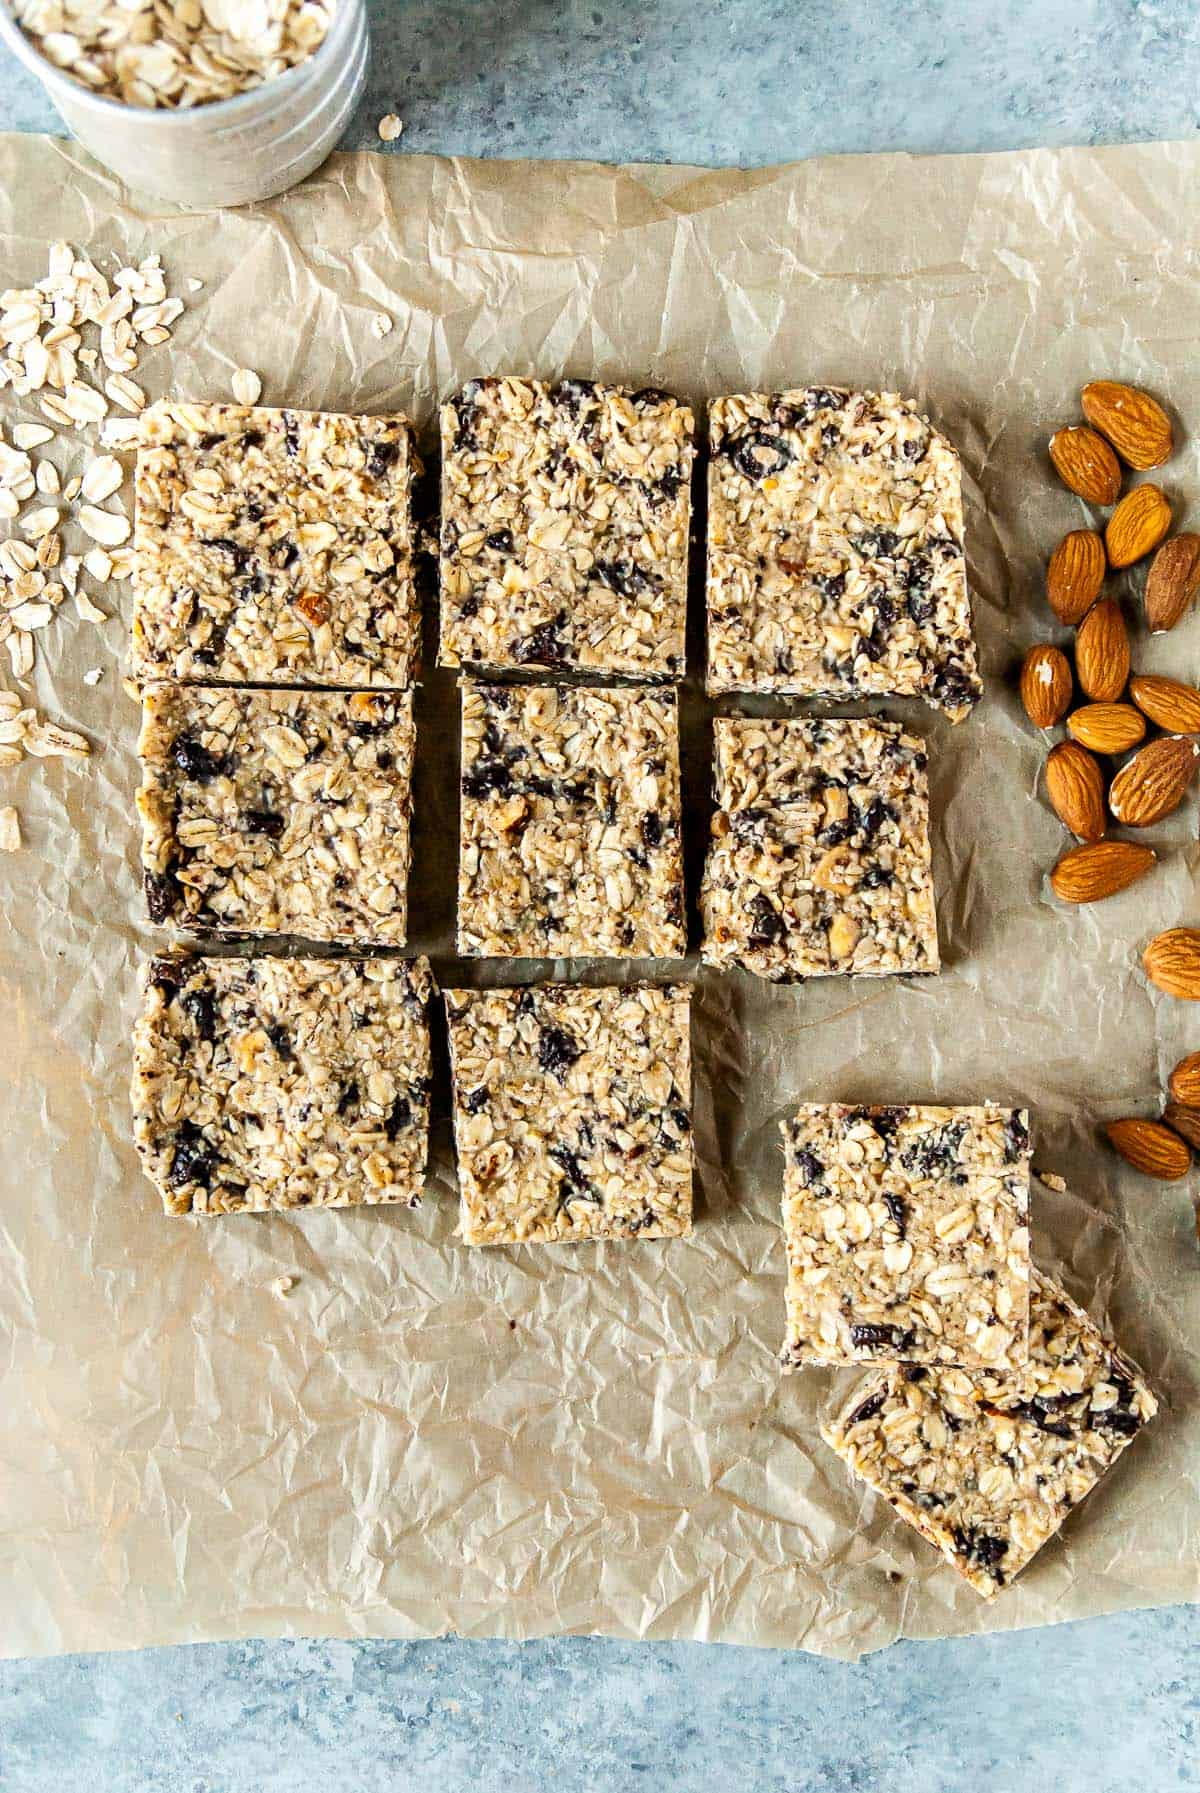 vegan granola bar slices on parchment paper